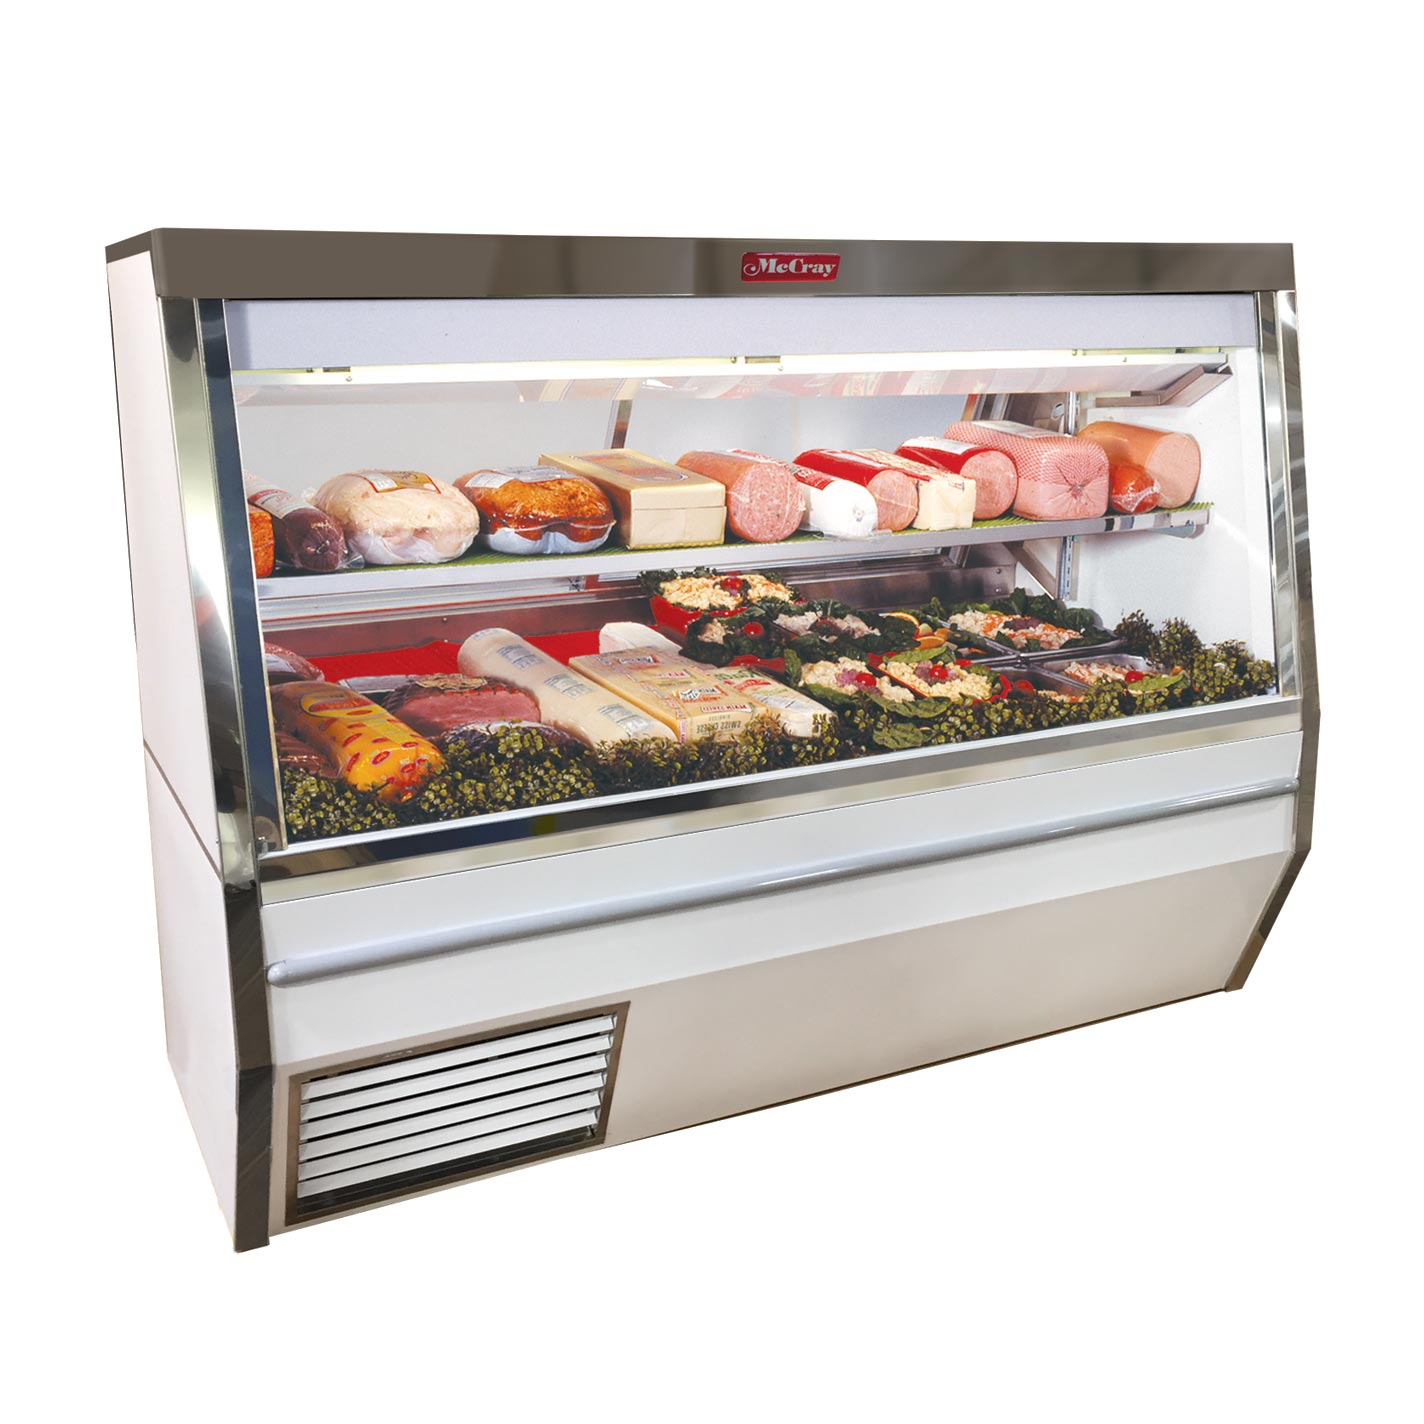 Howard-McCray R-CDS34N-4-BE-LS-LED display case, refrigerated deli